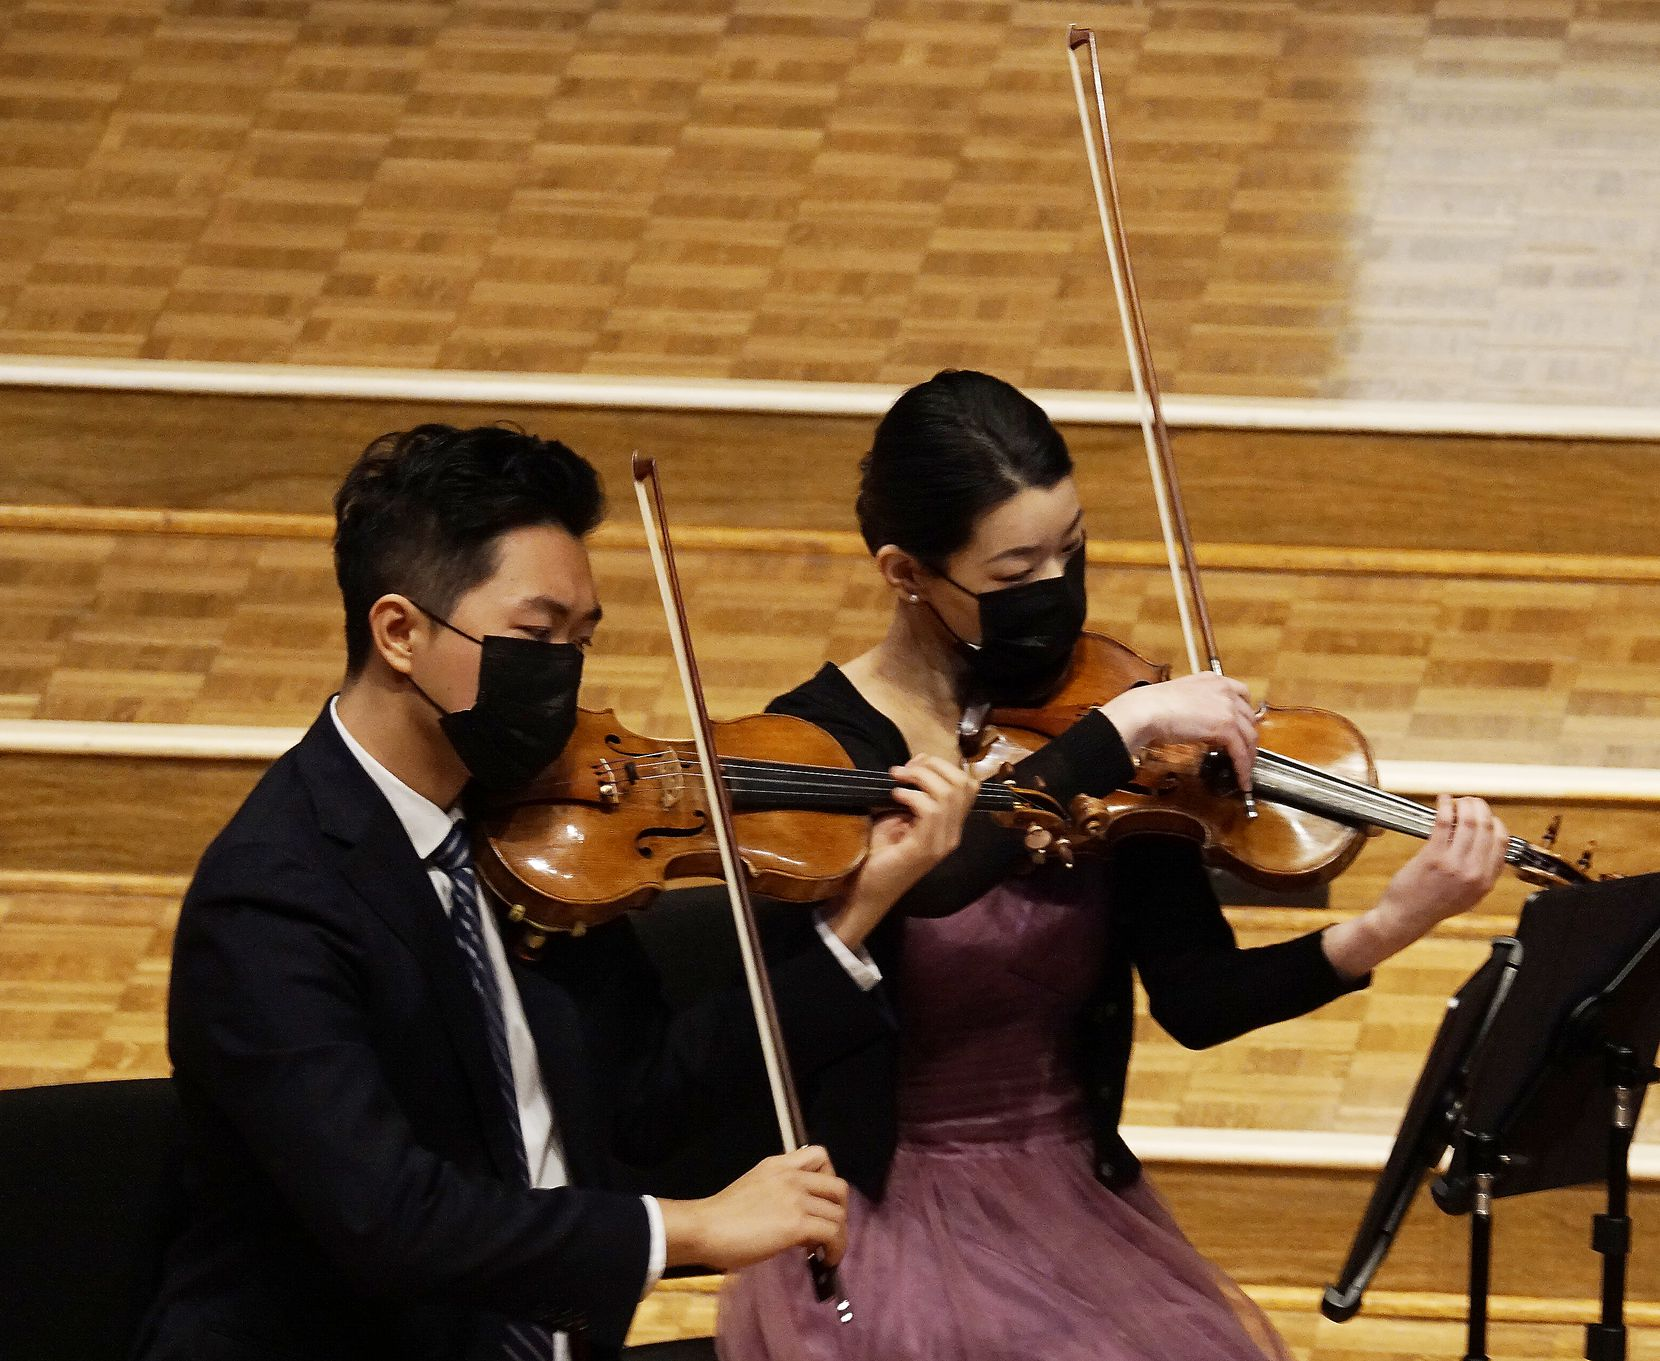 Violinists Hao Zhou and Lucy Wang play with the Viano String Quartet at Lovers Lane United Methodist Church in Dallas on March 8.